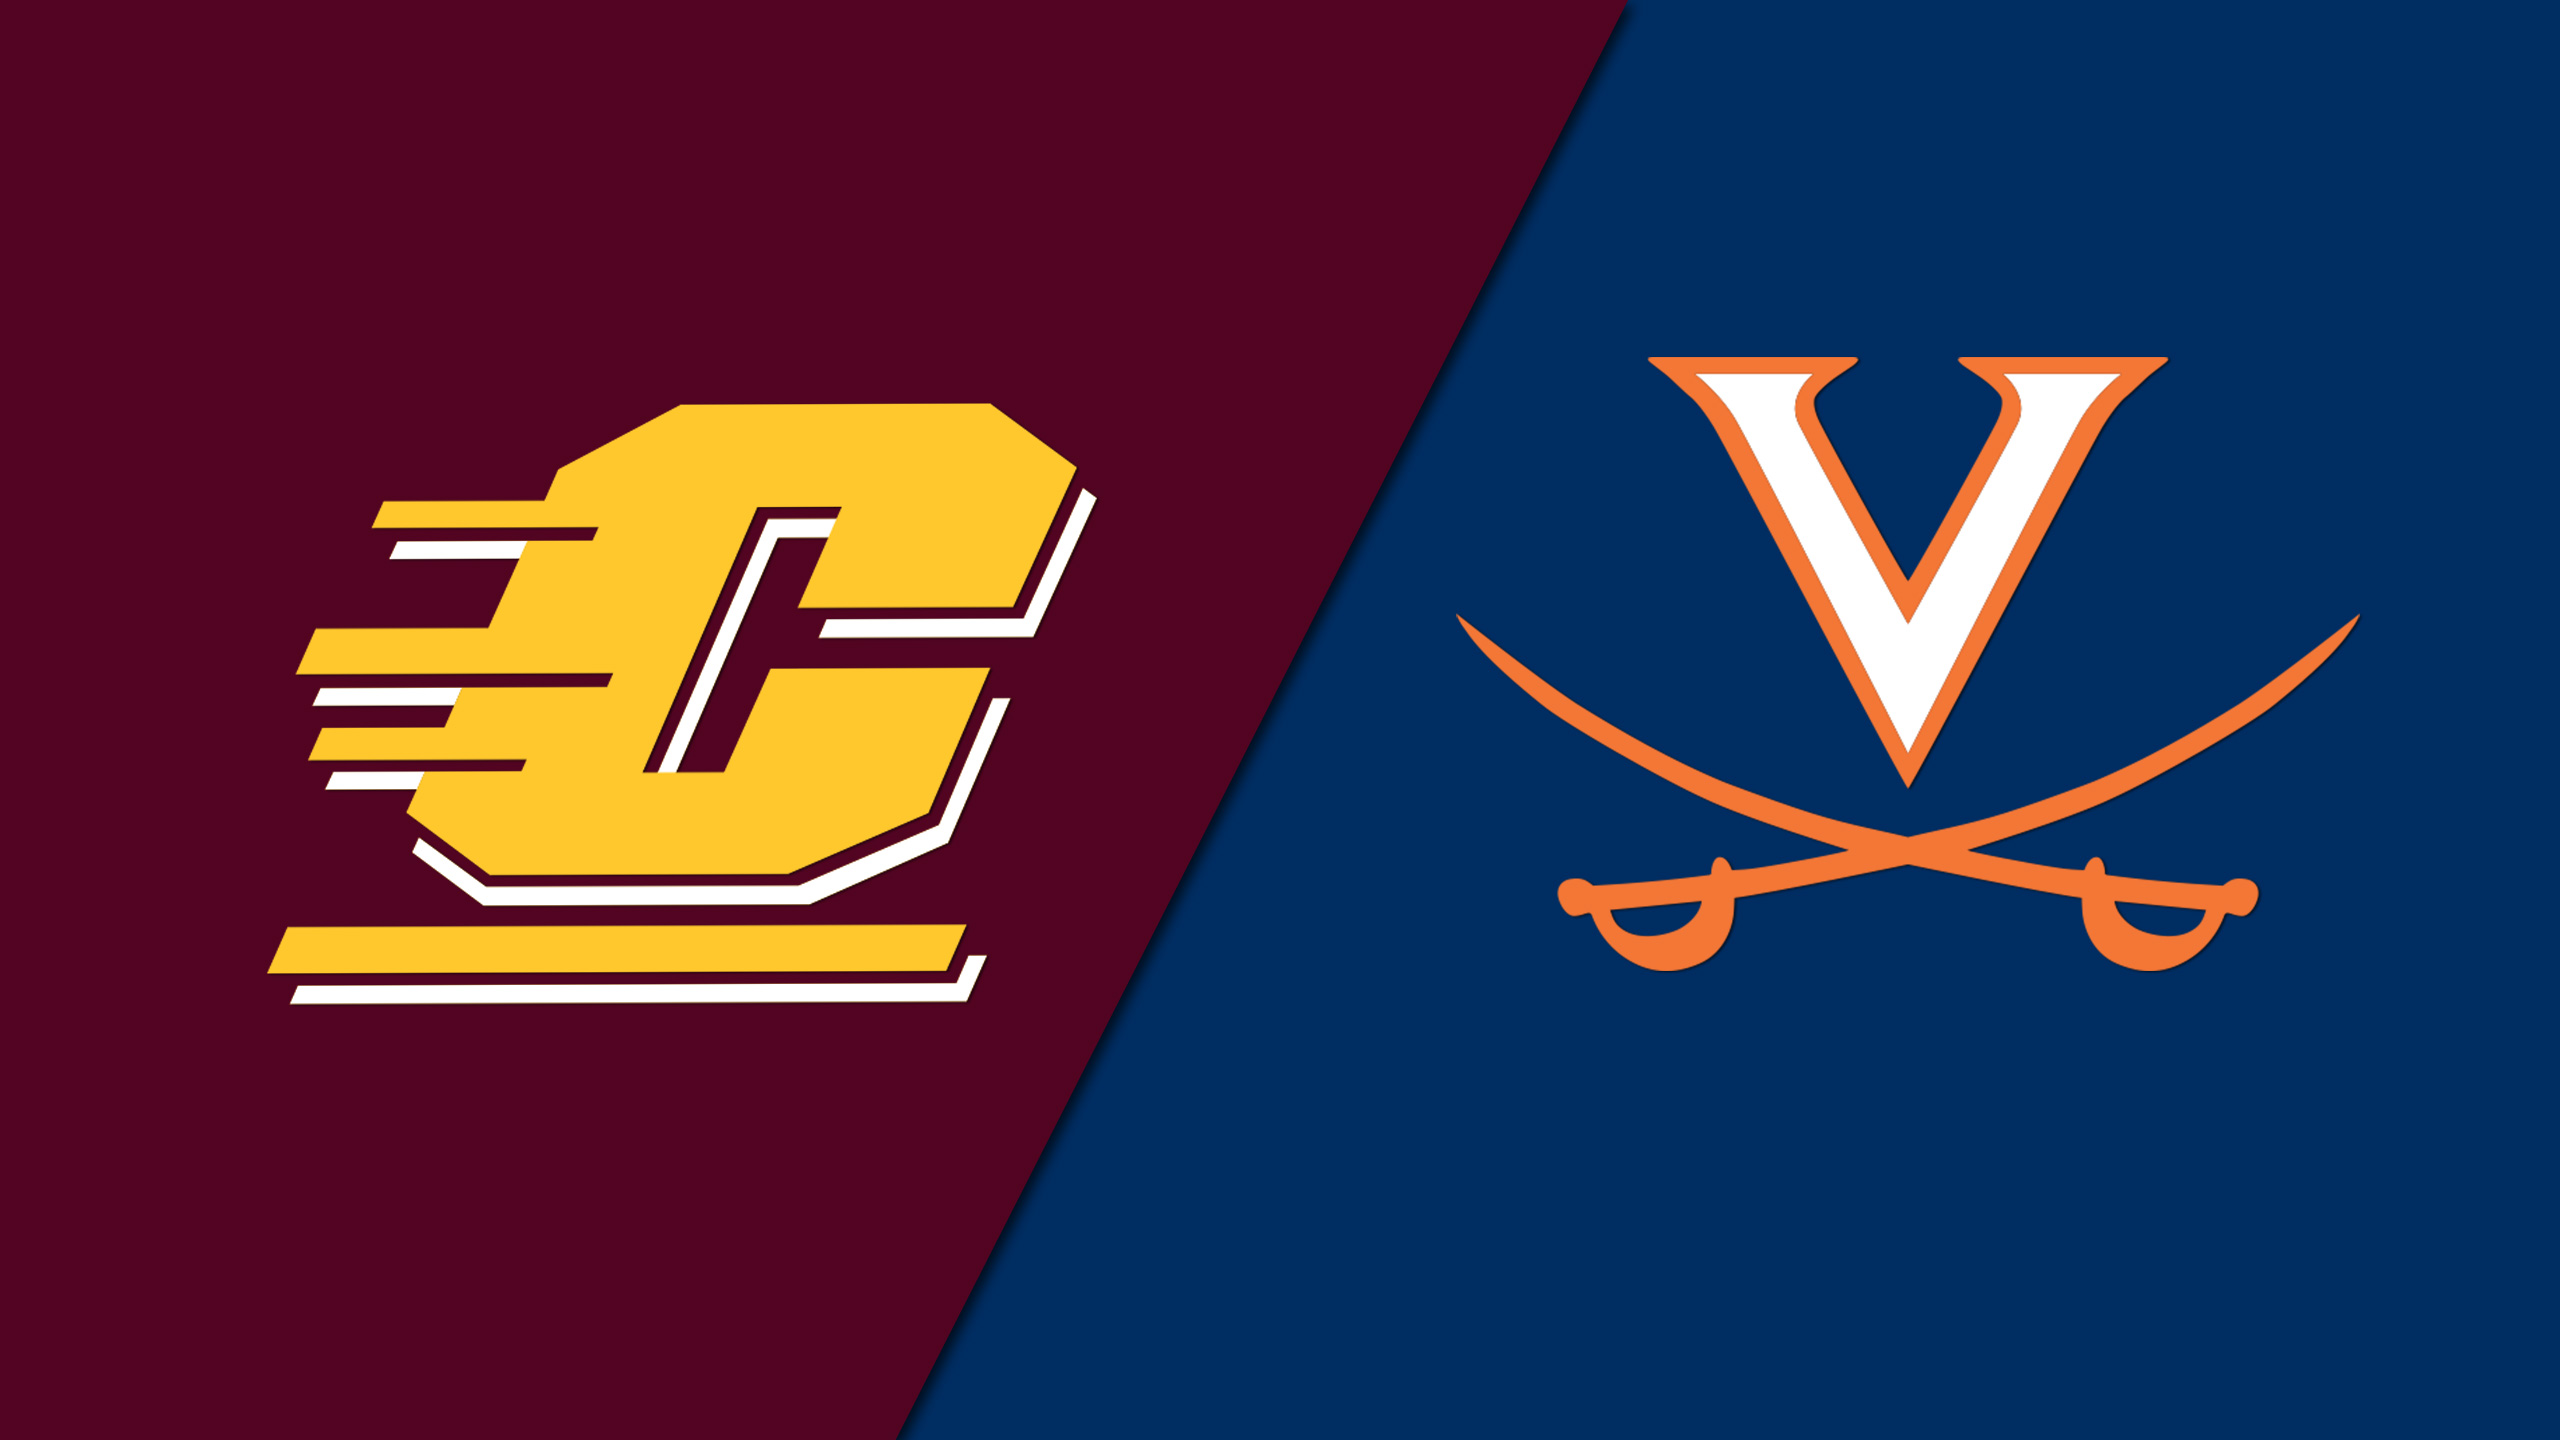 Central Michigan vs. Virginia (W Basketball)